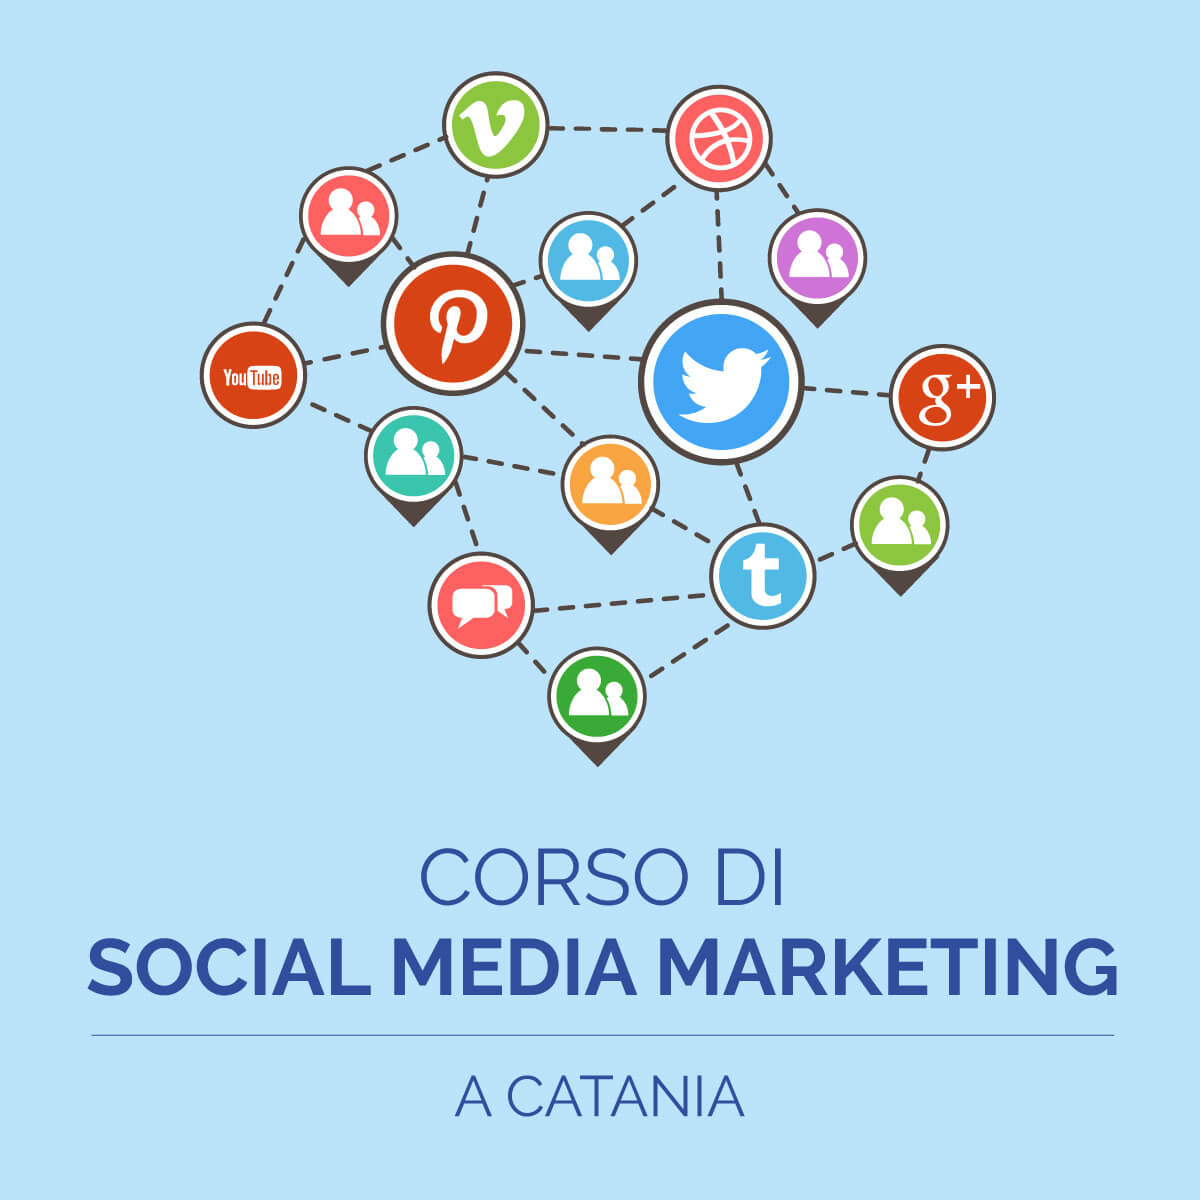 corso-social-media-marketing-catania